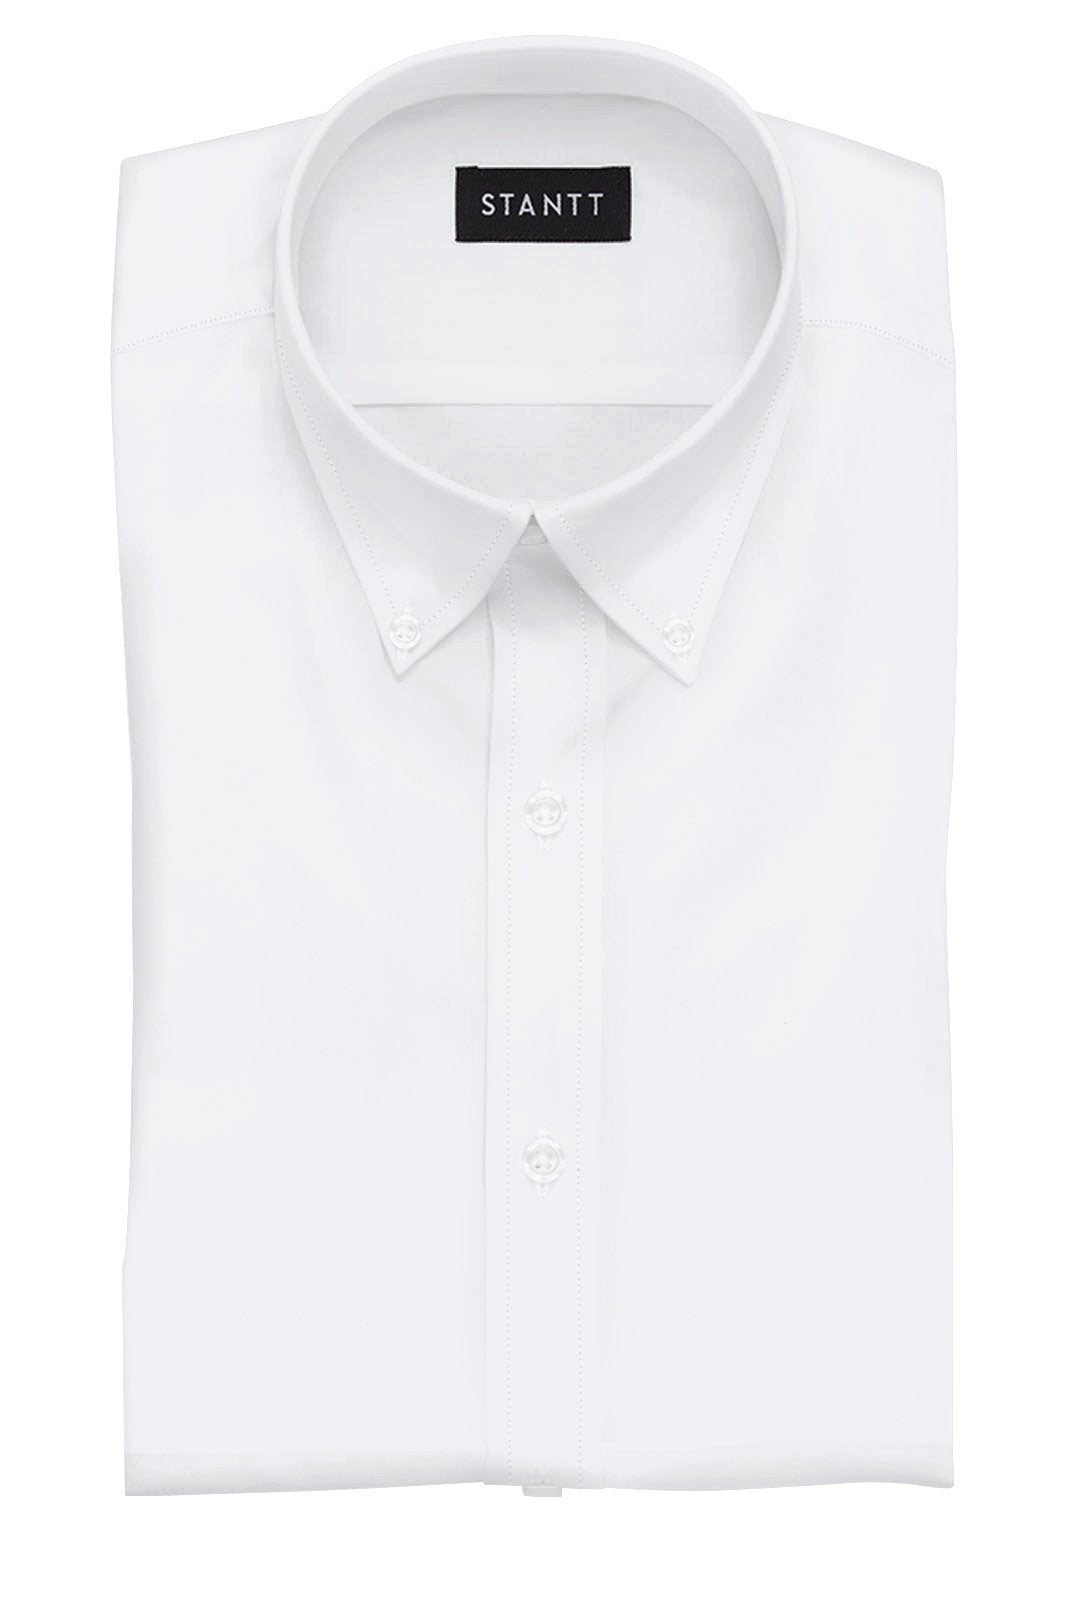 8fc63cb2c6 Wrinkle-Resistant White Oxford  Button-Down Collar